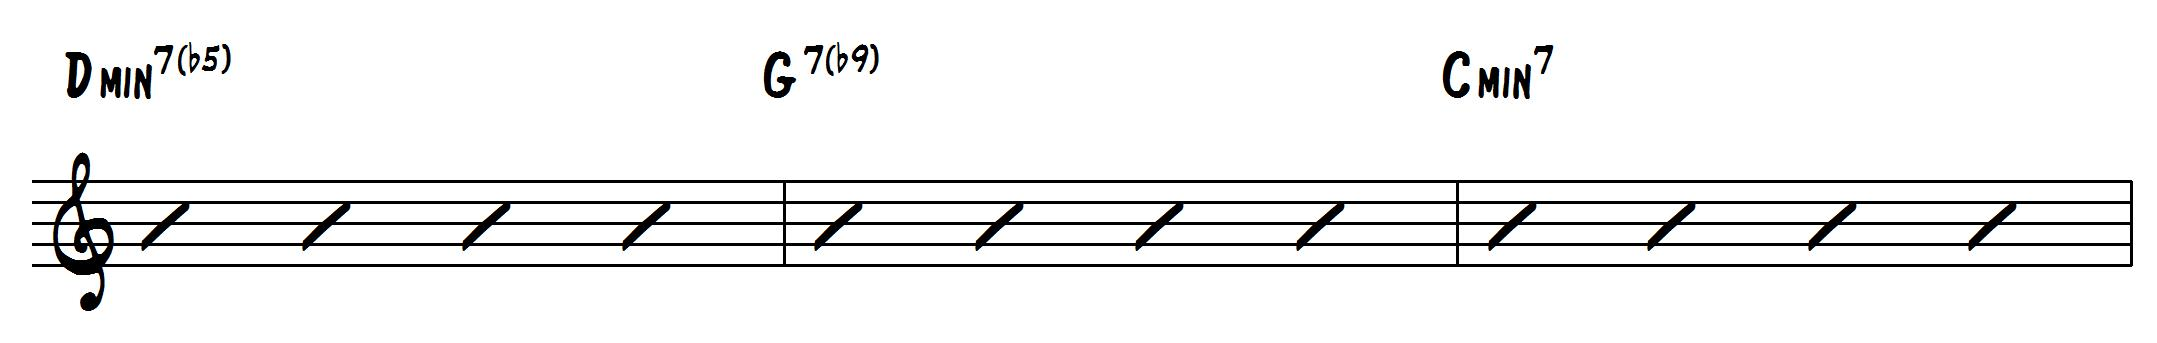 3 Important Jazz Chord Progressions You Need to Master - Learn Jazz ...